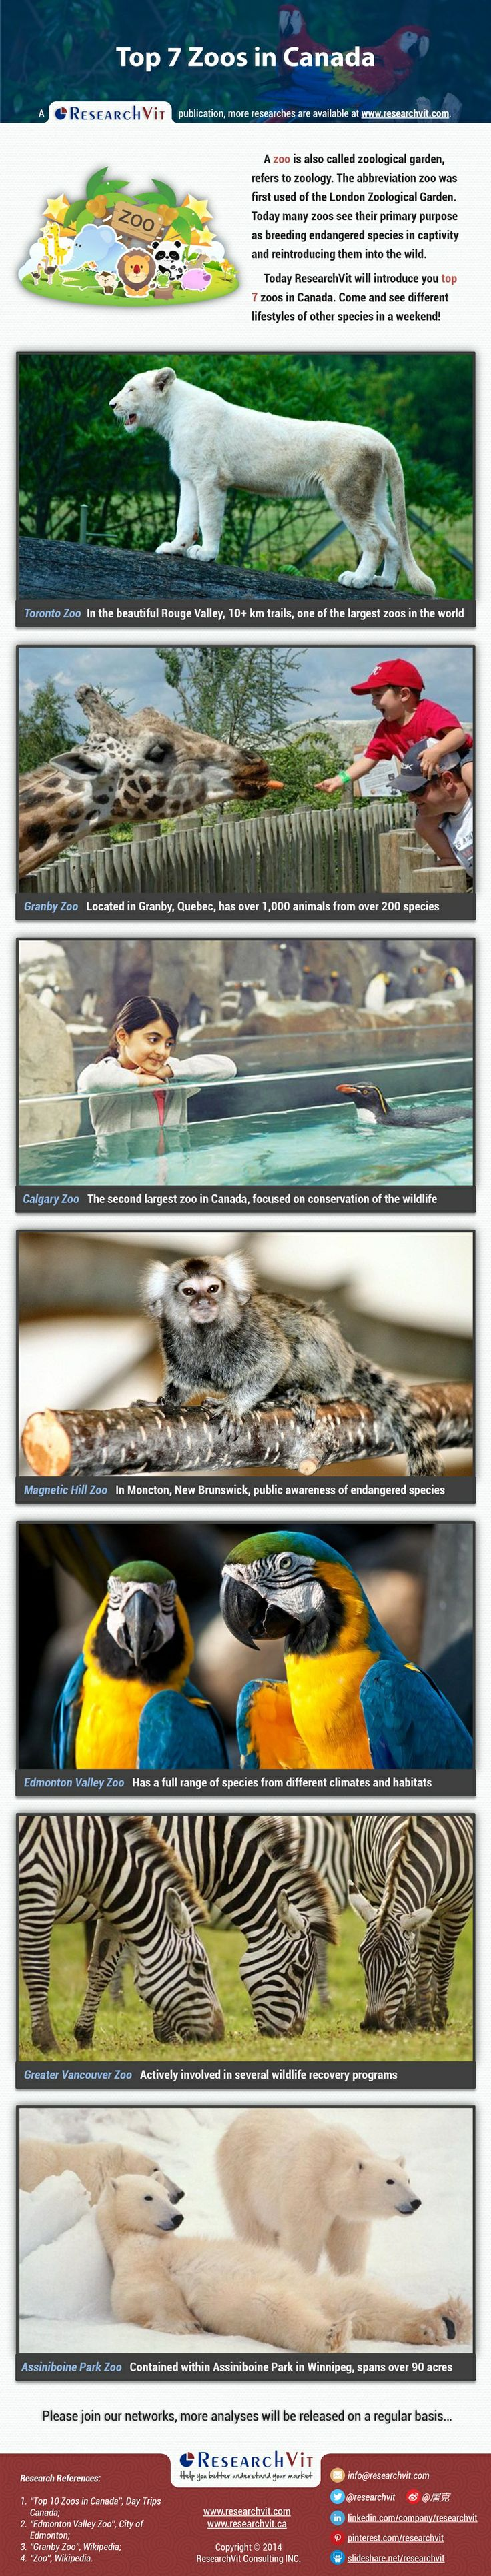 Top 7 Zoos in Canada: A zoo is also called zoological garden, refers tozoology. The abbreviation zoo was first used of theLondon Zoological Garden. Today many zoos see their primary purpose as breeding endangered species in captivity and reintroducing them into the wild. Today ResearchVit will introduce you top 7 zoos in Canada. Come and see different lifestyles of other species in a weekend!